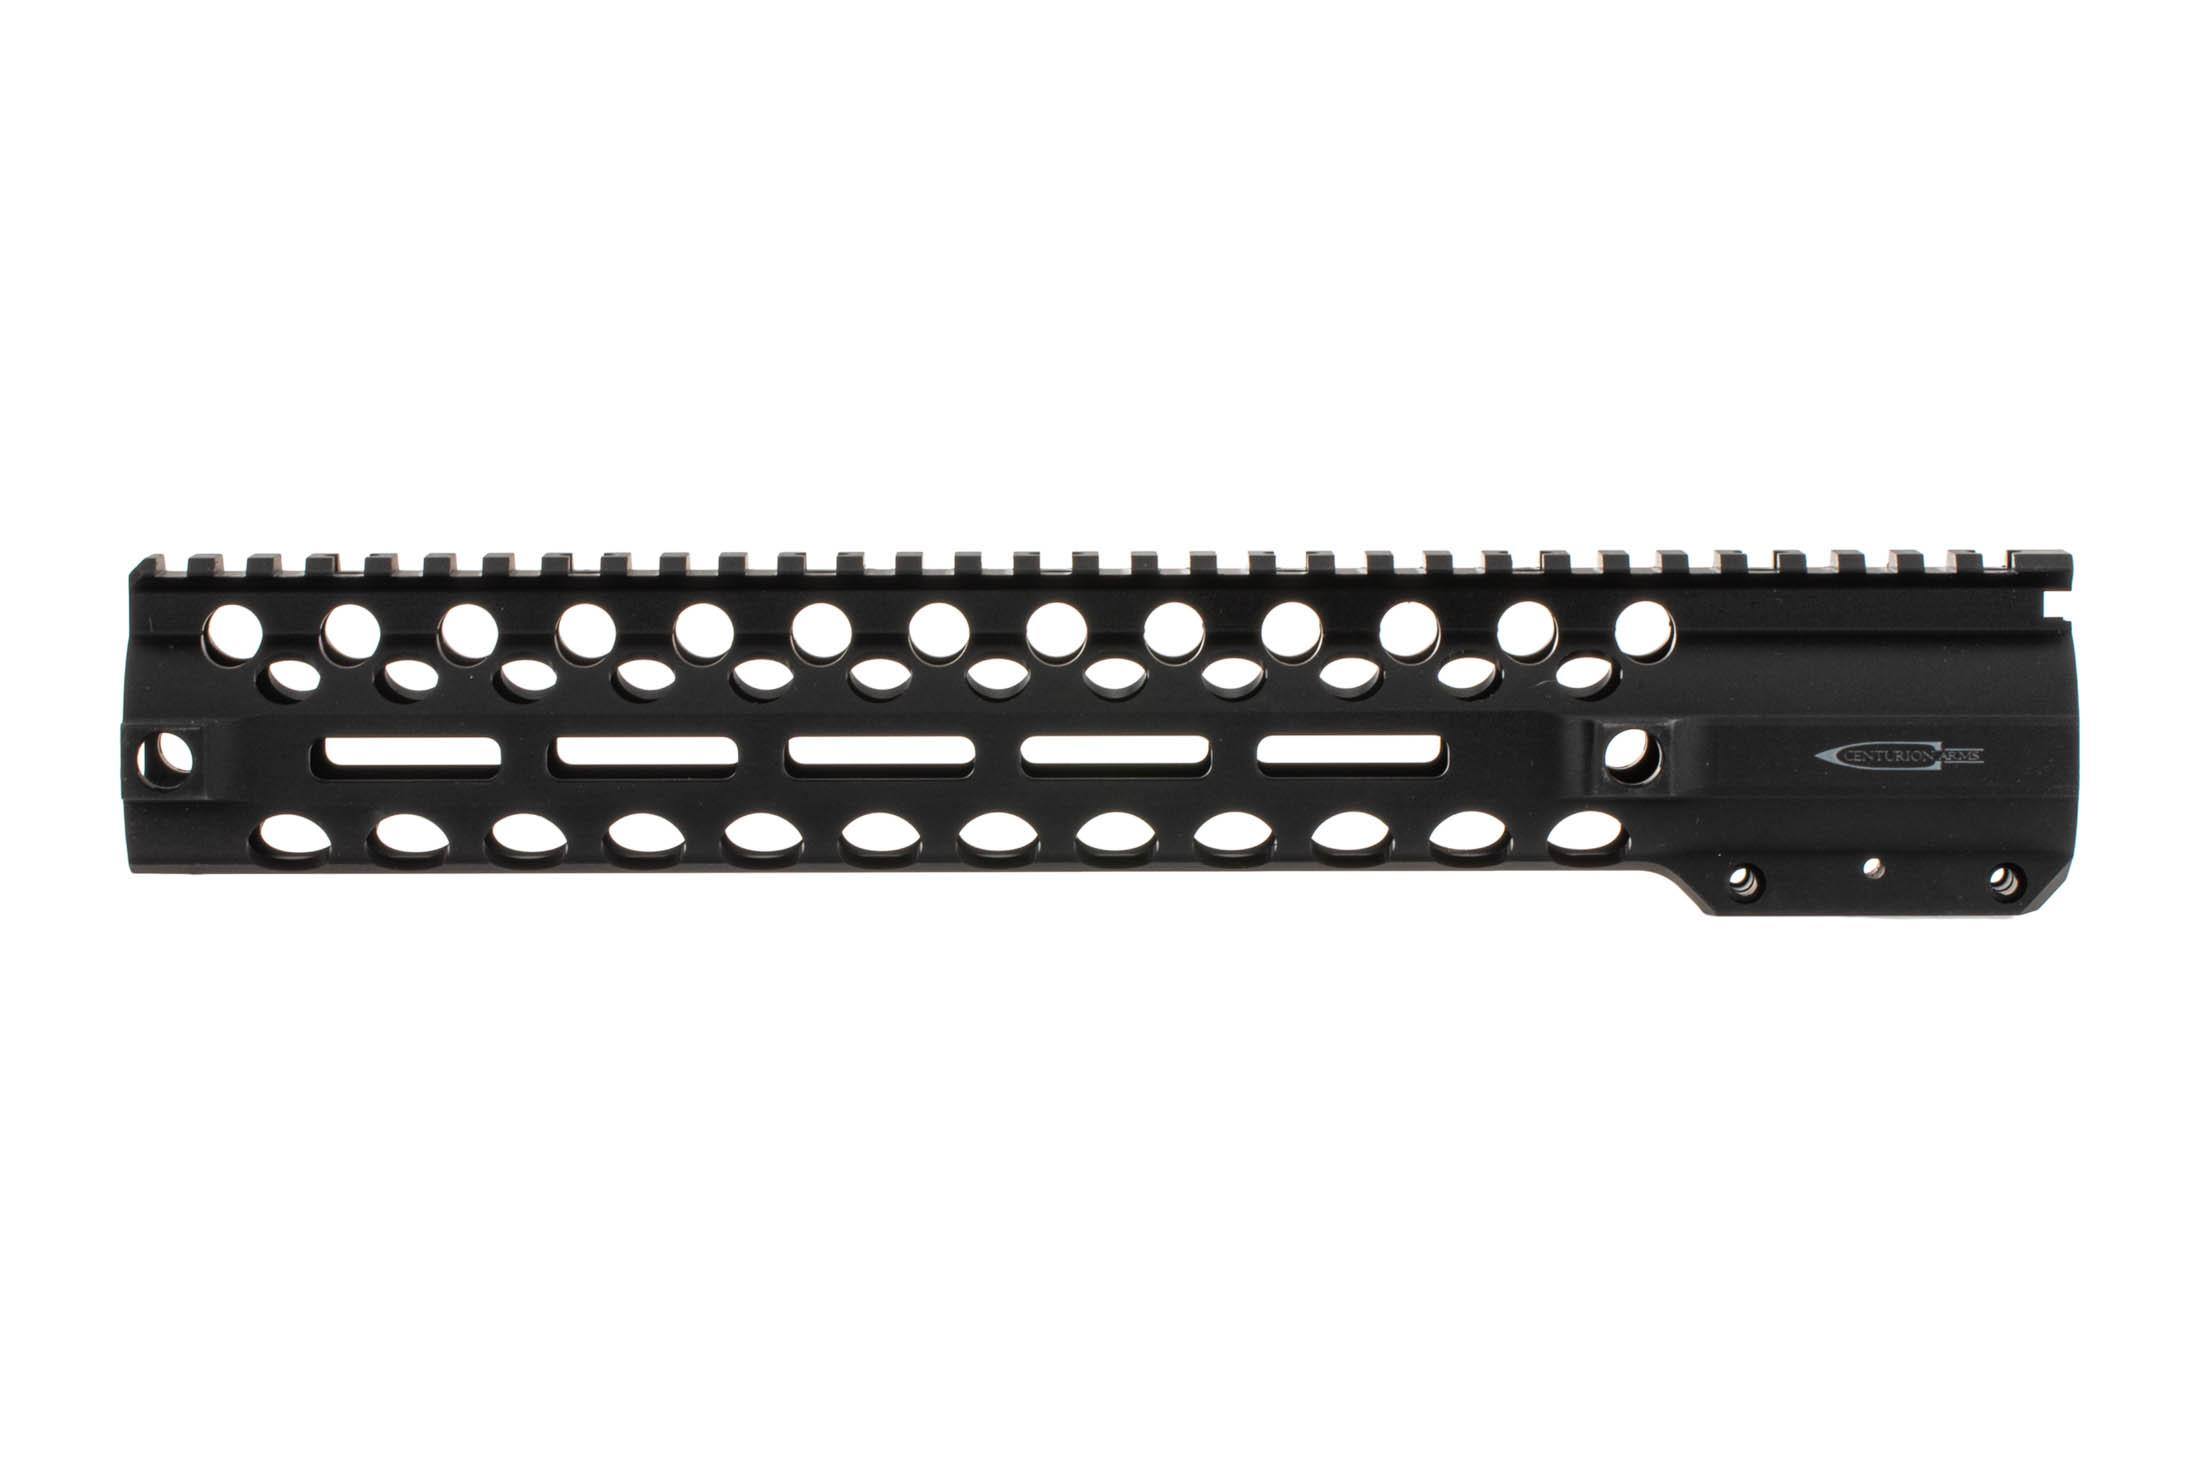 The Centurion Arms CMR AR-308 Handguard 13 inch features QD sling swivel slots